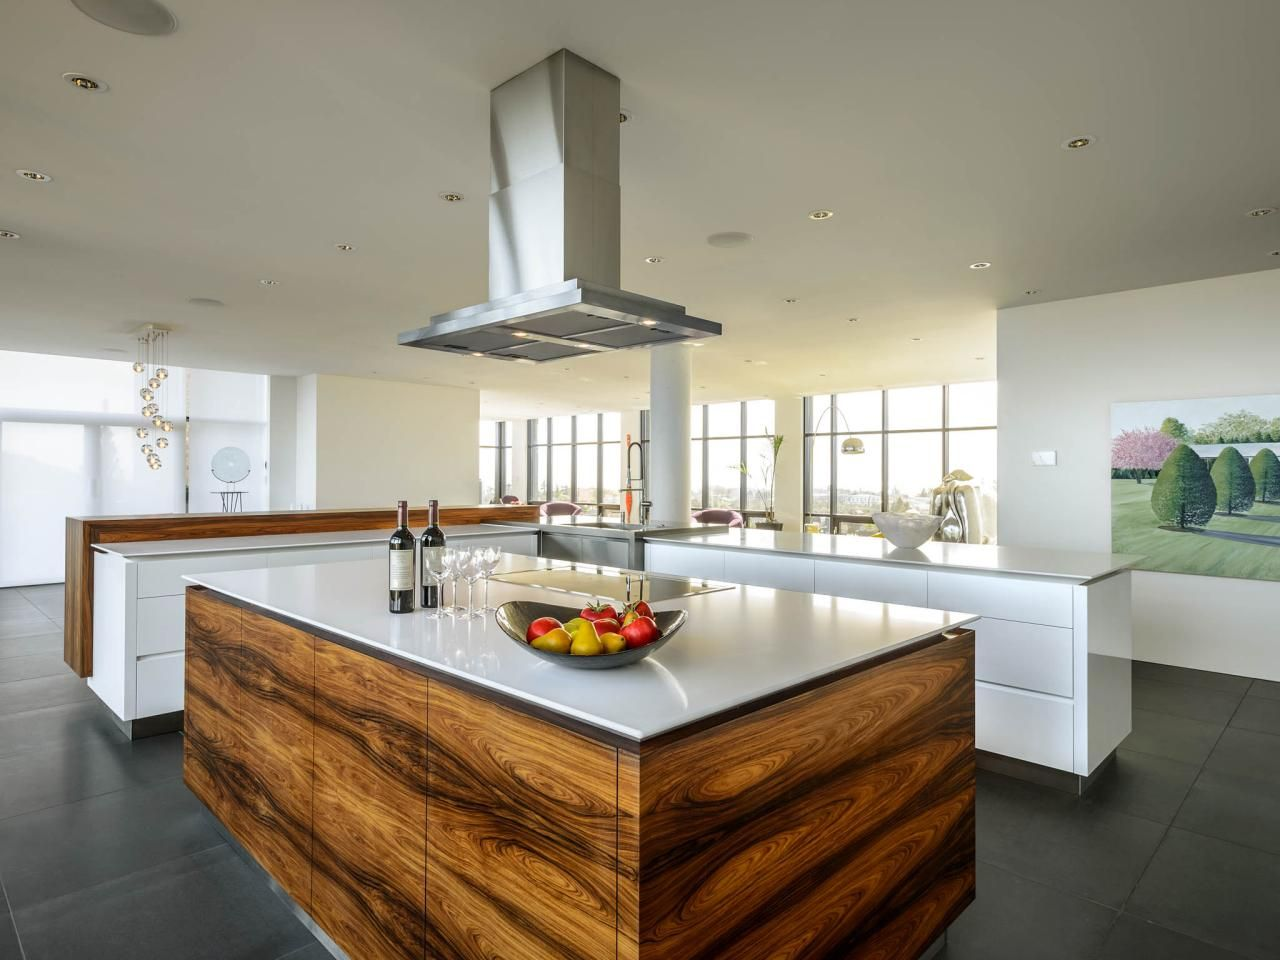 Pictures Of The Year's Best Kitchens Nkba Kitchen Design Best Modern Kitchen Design Ideas 2014 Inspiration